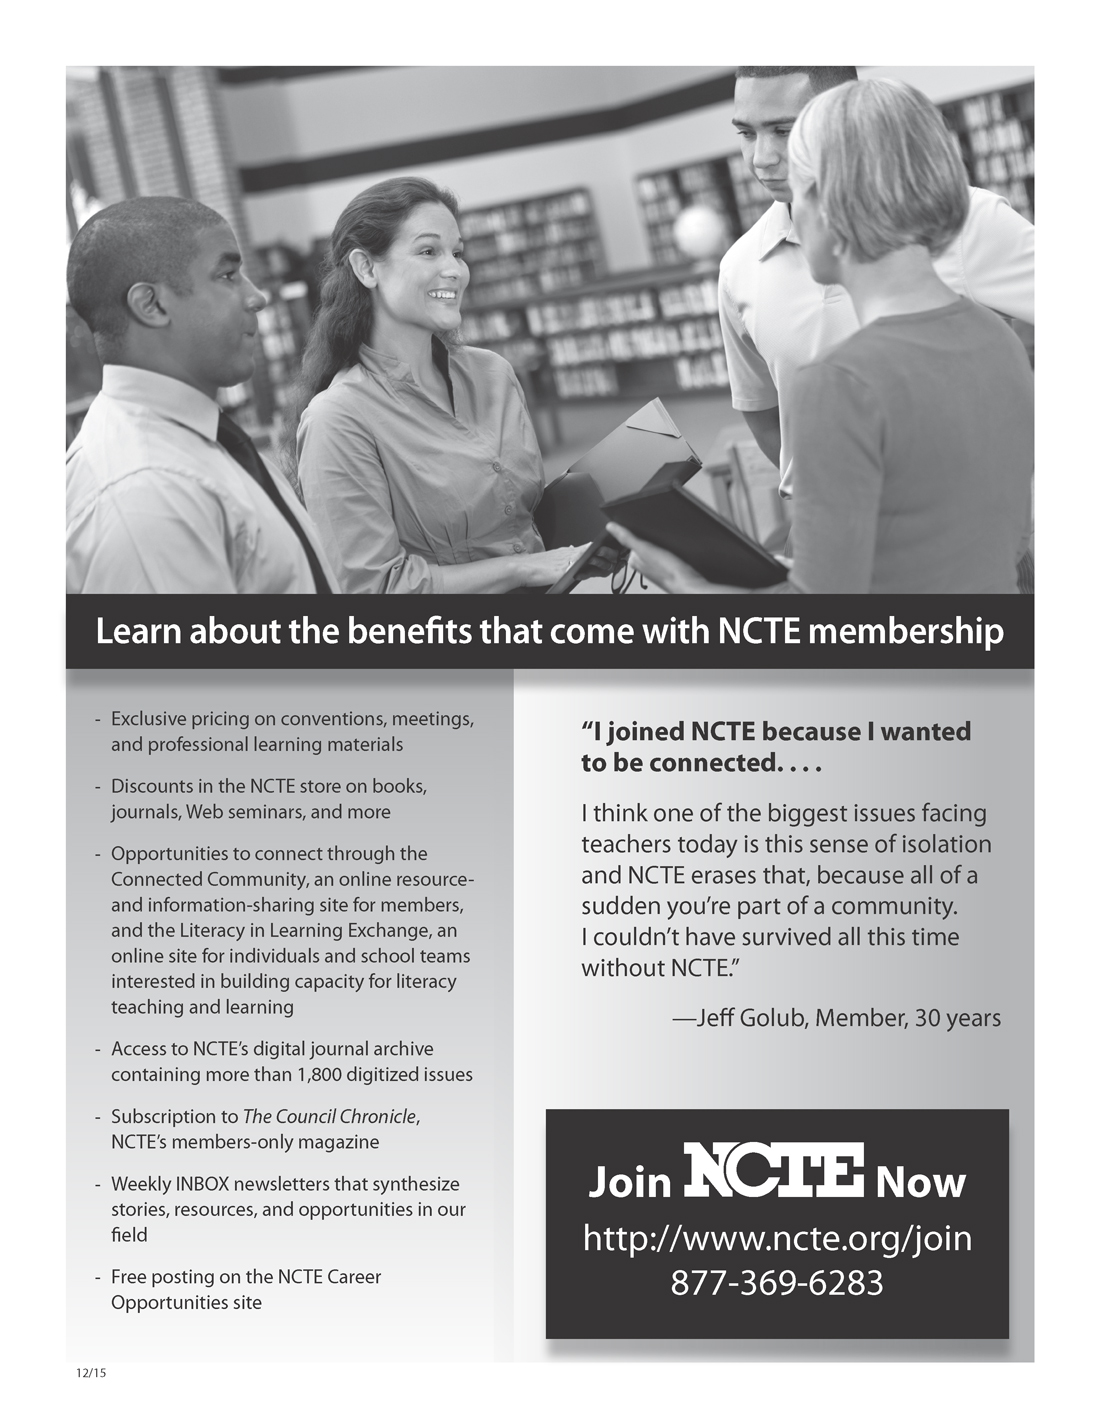 Join NCTE Image